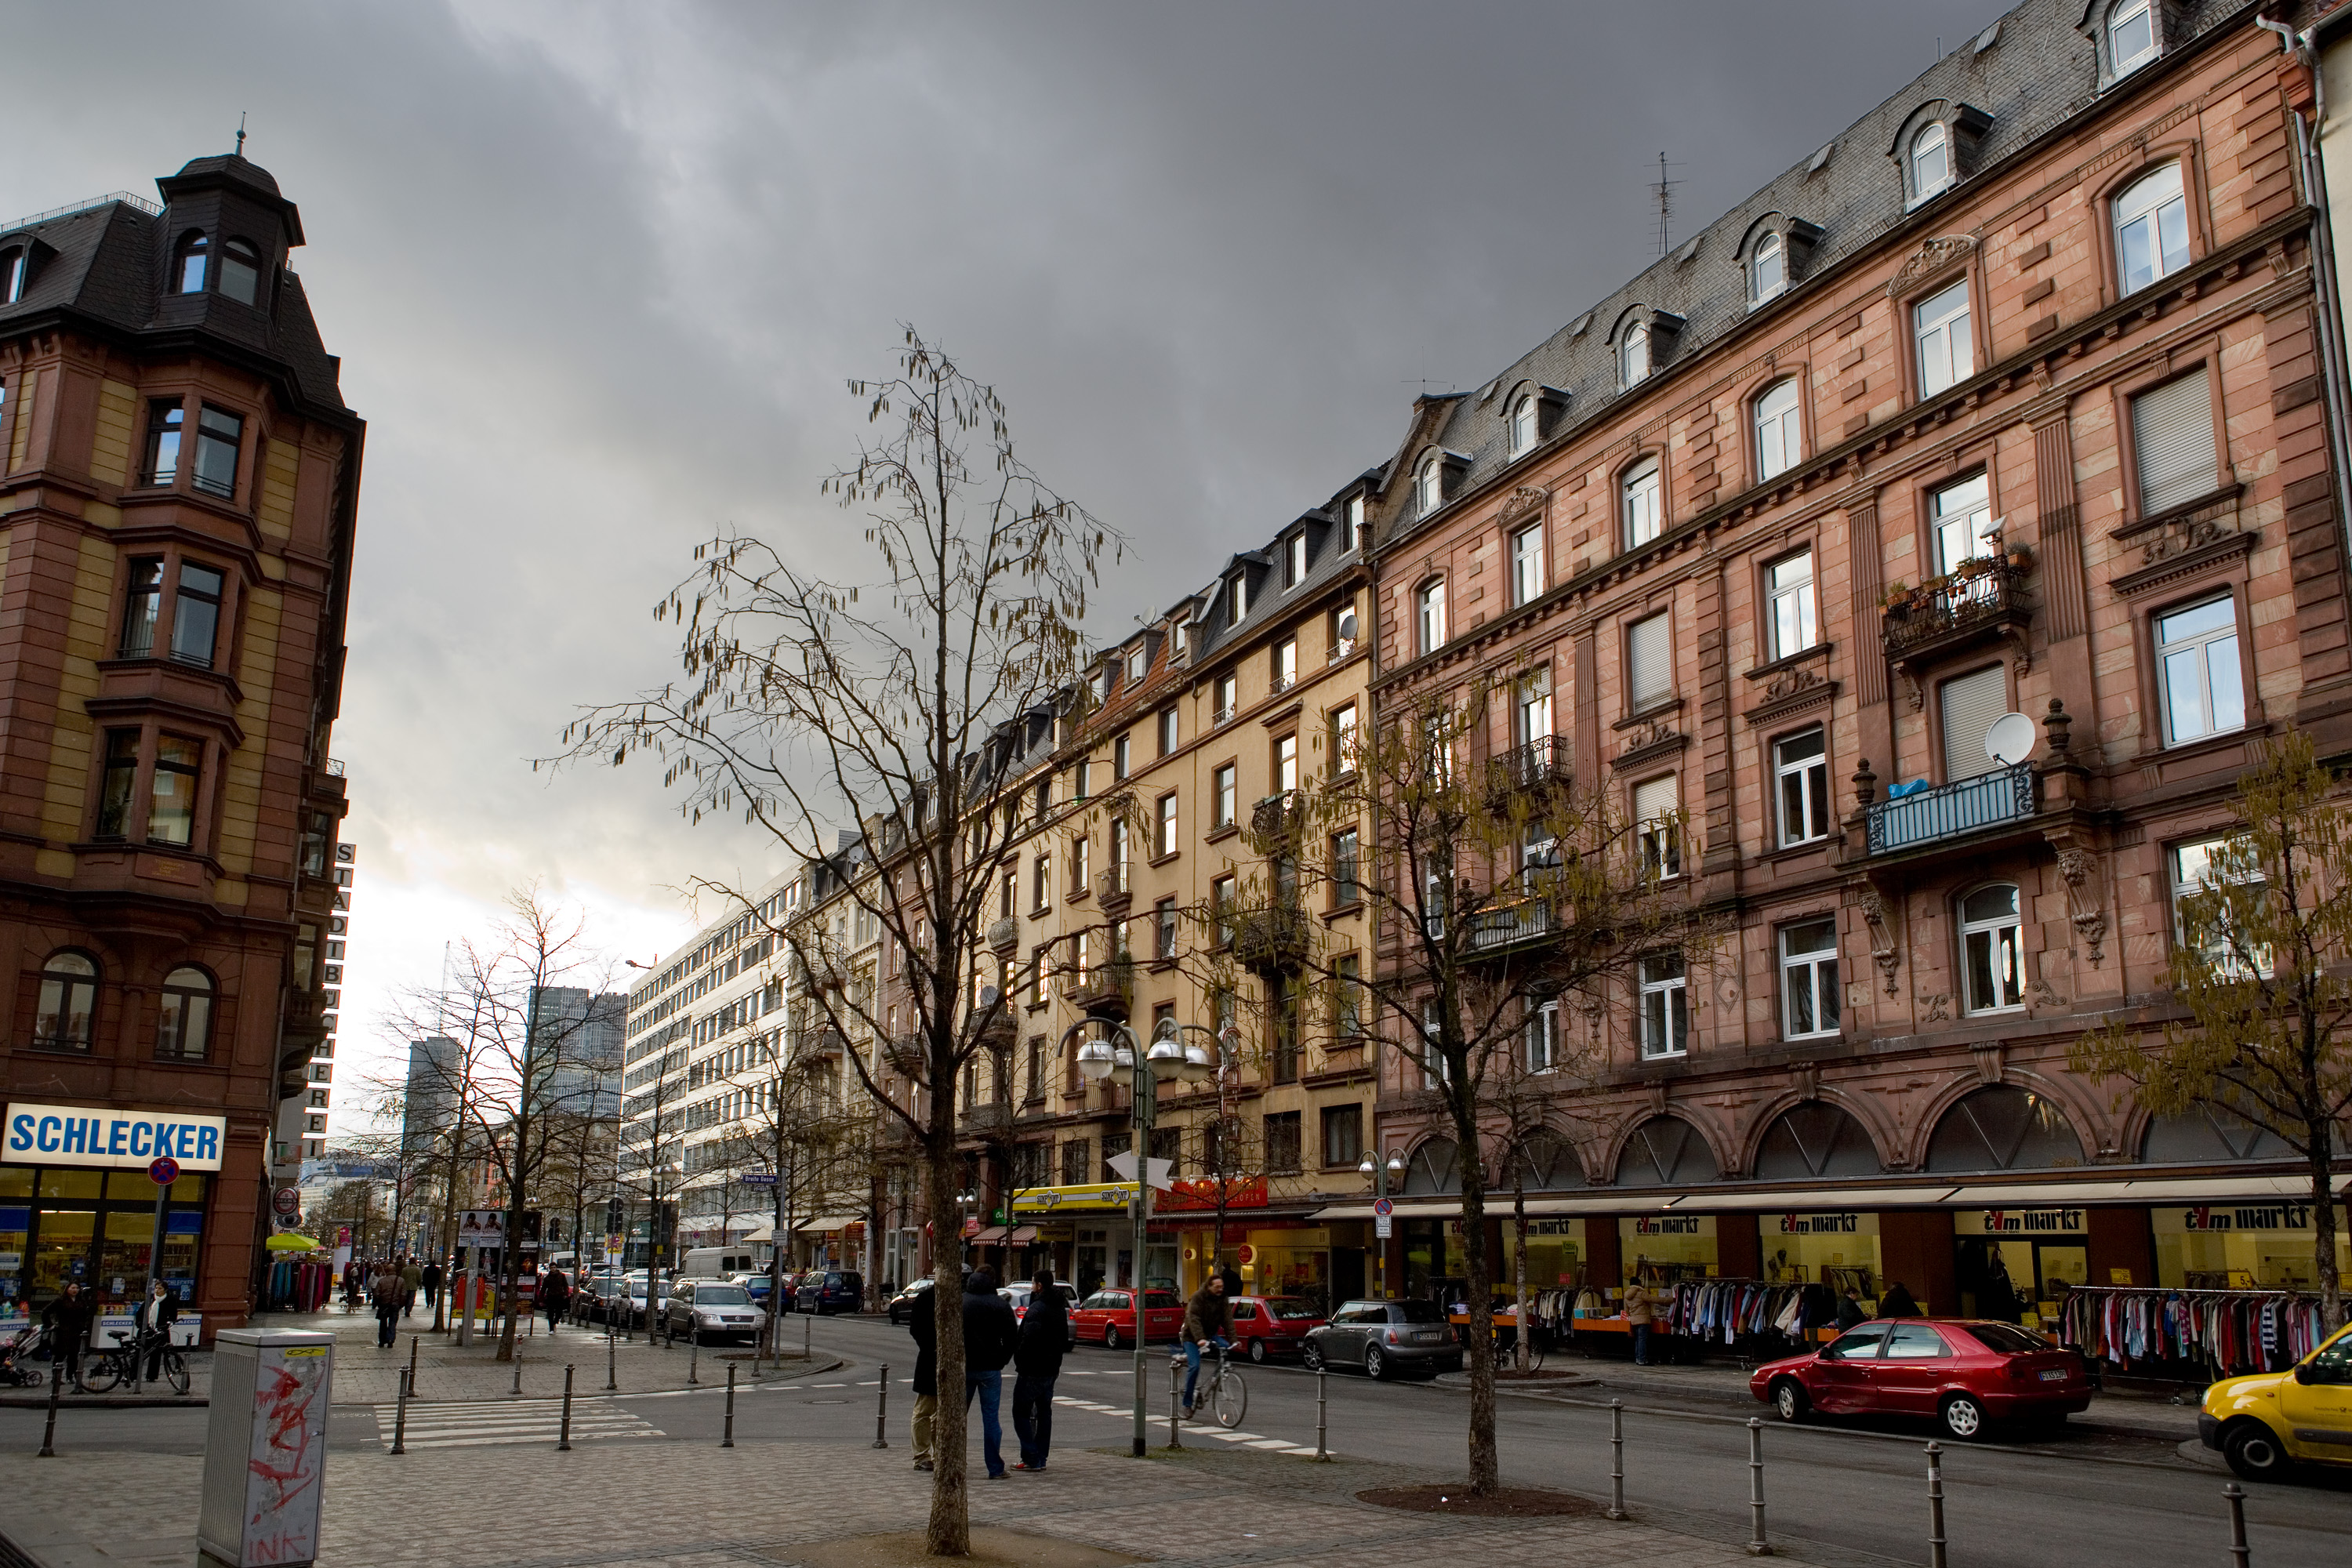 zeil street, Things to do in Frankfurt